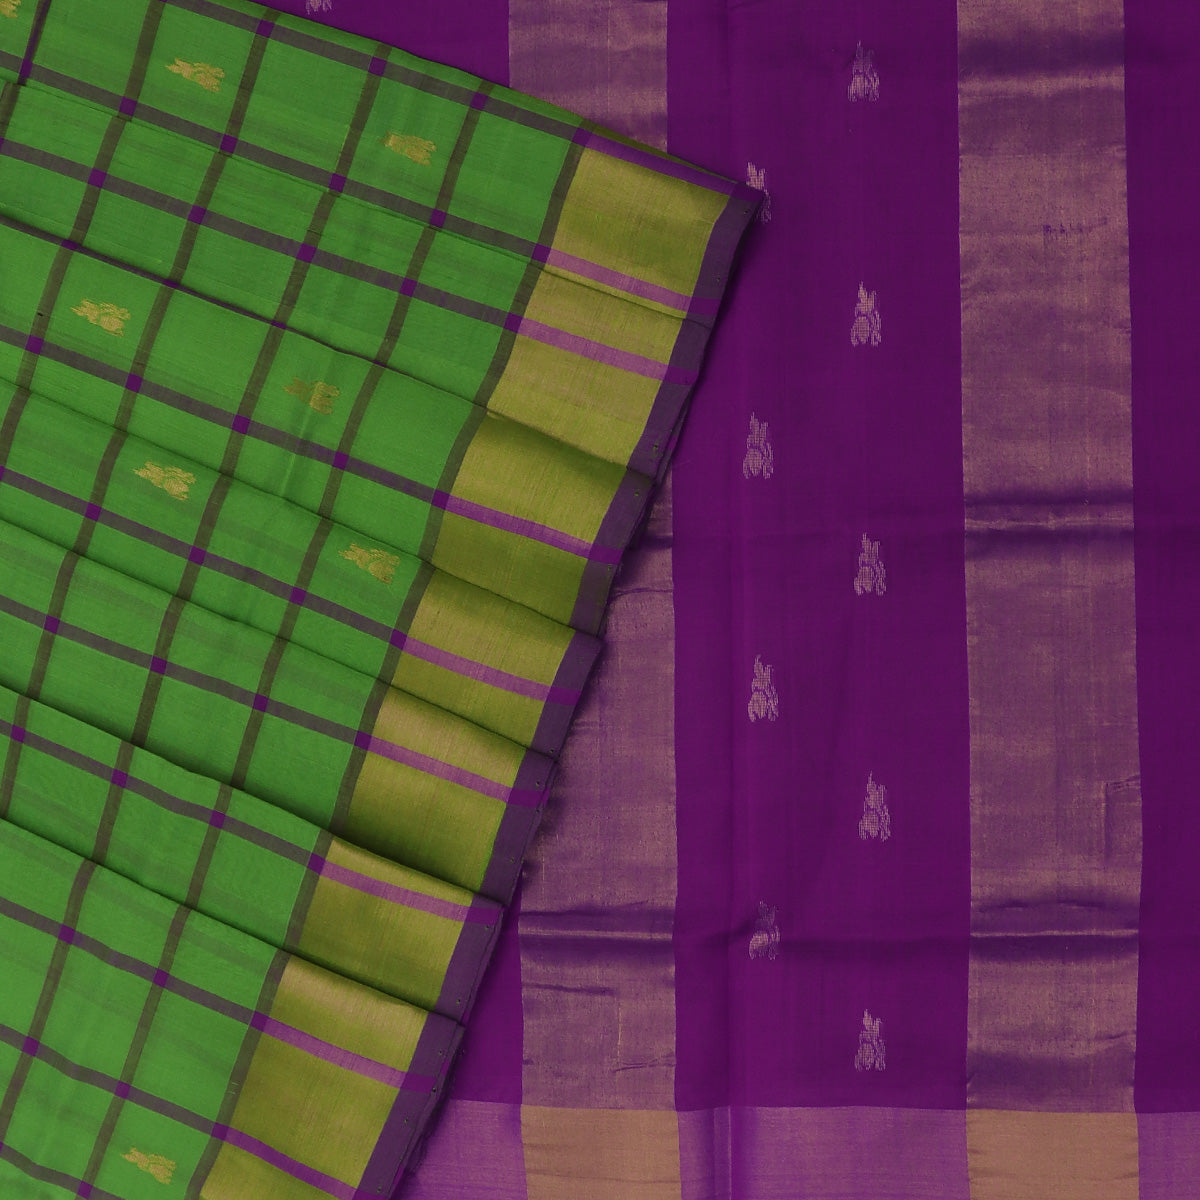 Silk Cotton Saree-Parrot Green and Violet Checks with Butta and zari border